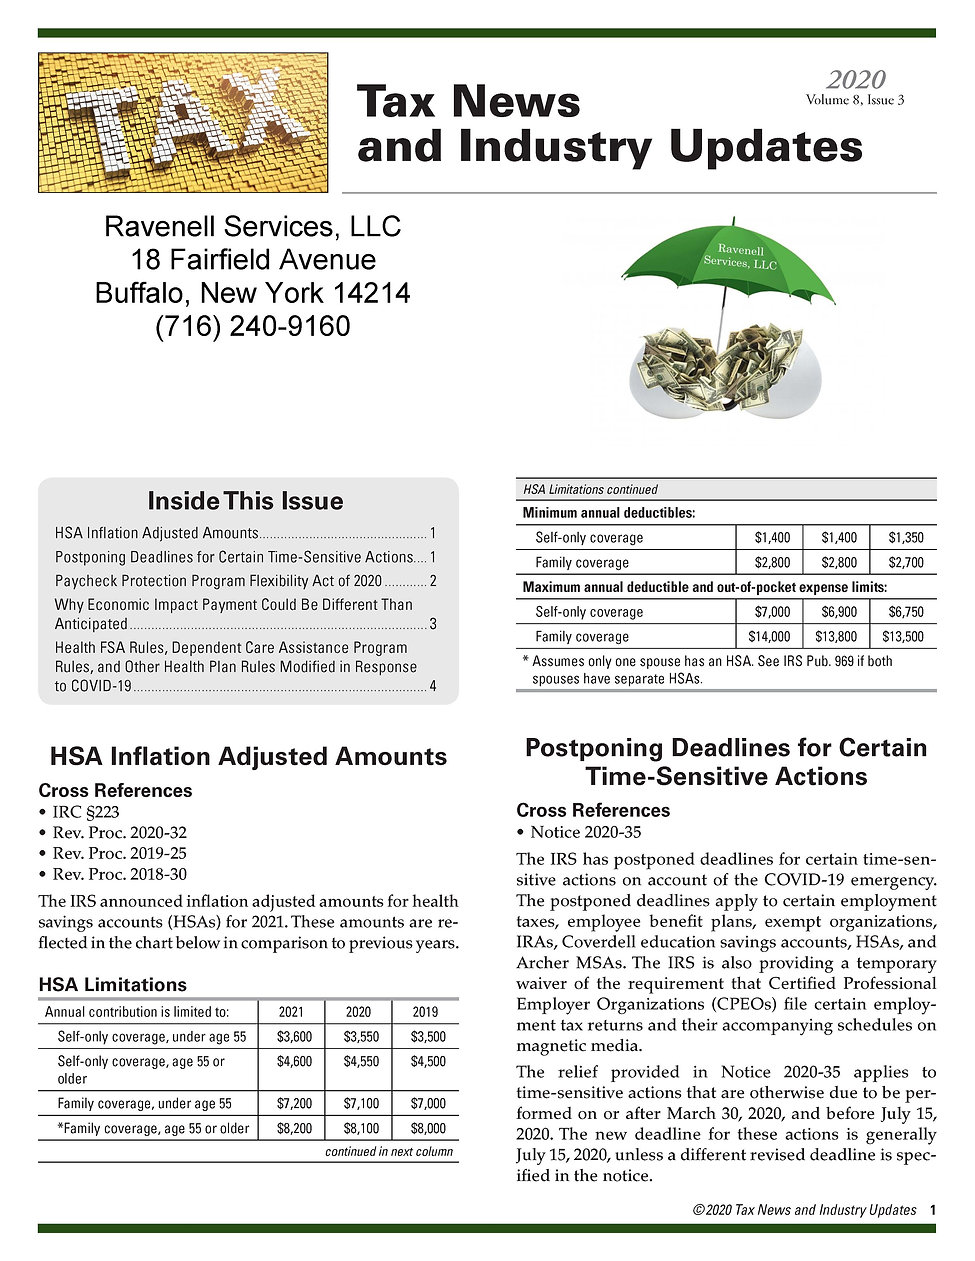 Tax_News_and_Industry_Updates_-_Volume_8